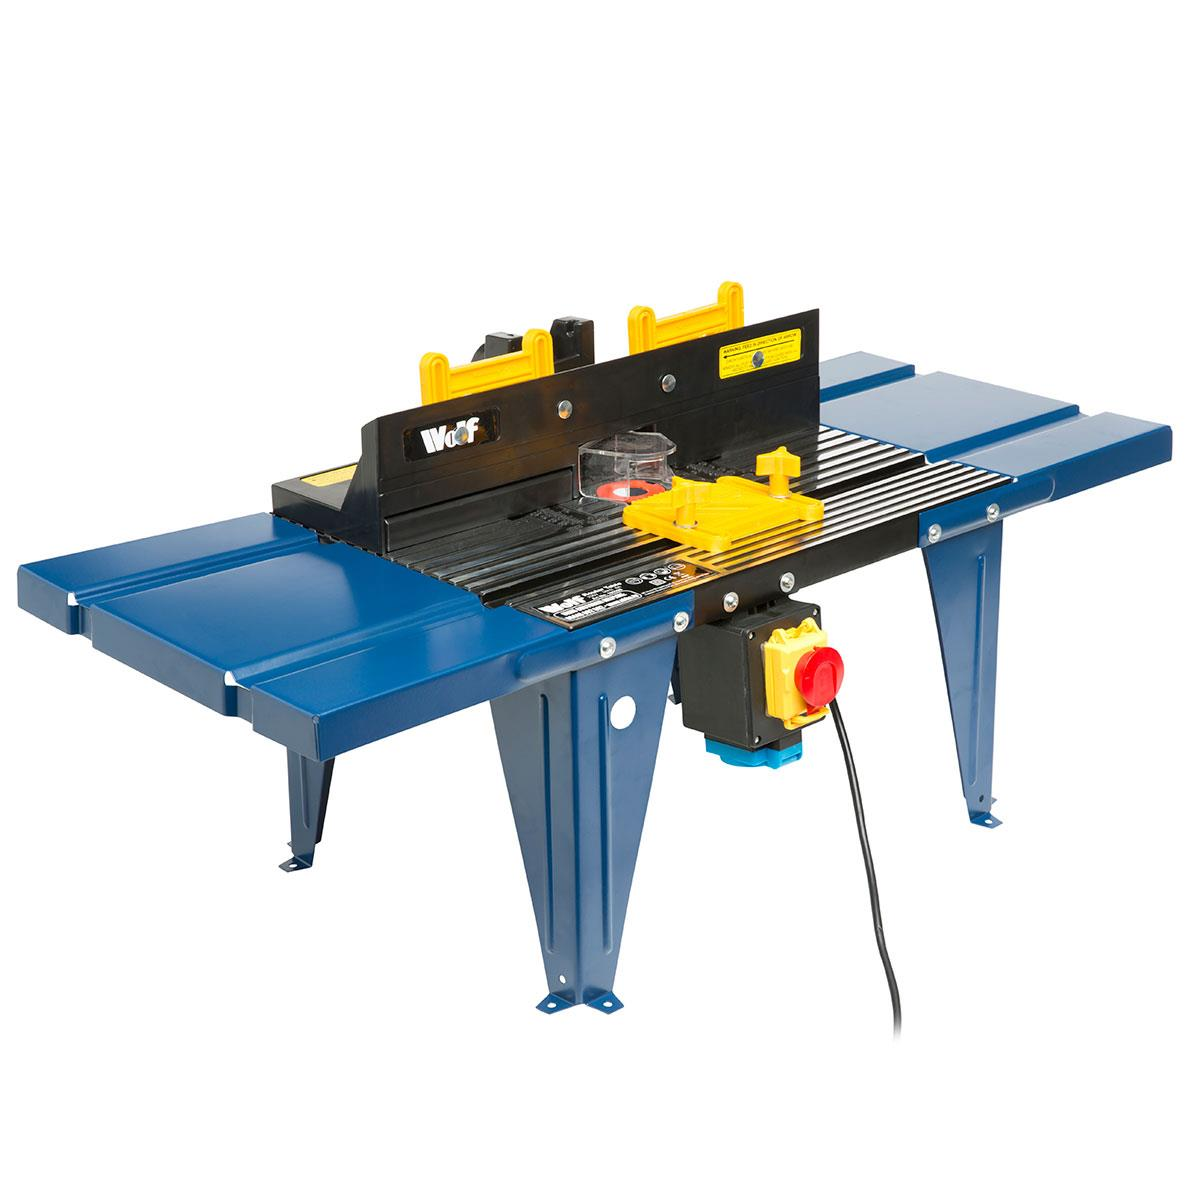 Powerful wolf 1200w plunge router router table kit ukhs tools wolf die cast aluminium router table greentooth Choice Image